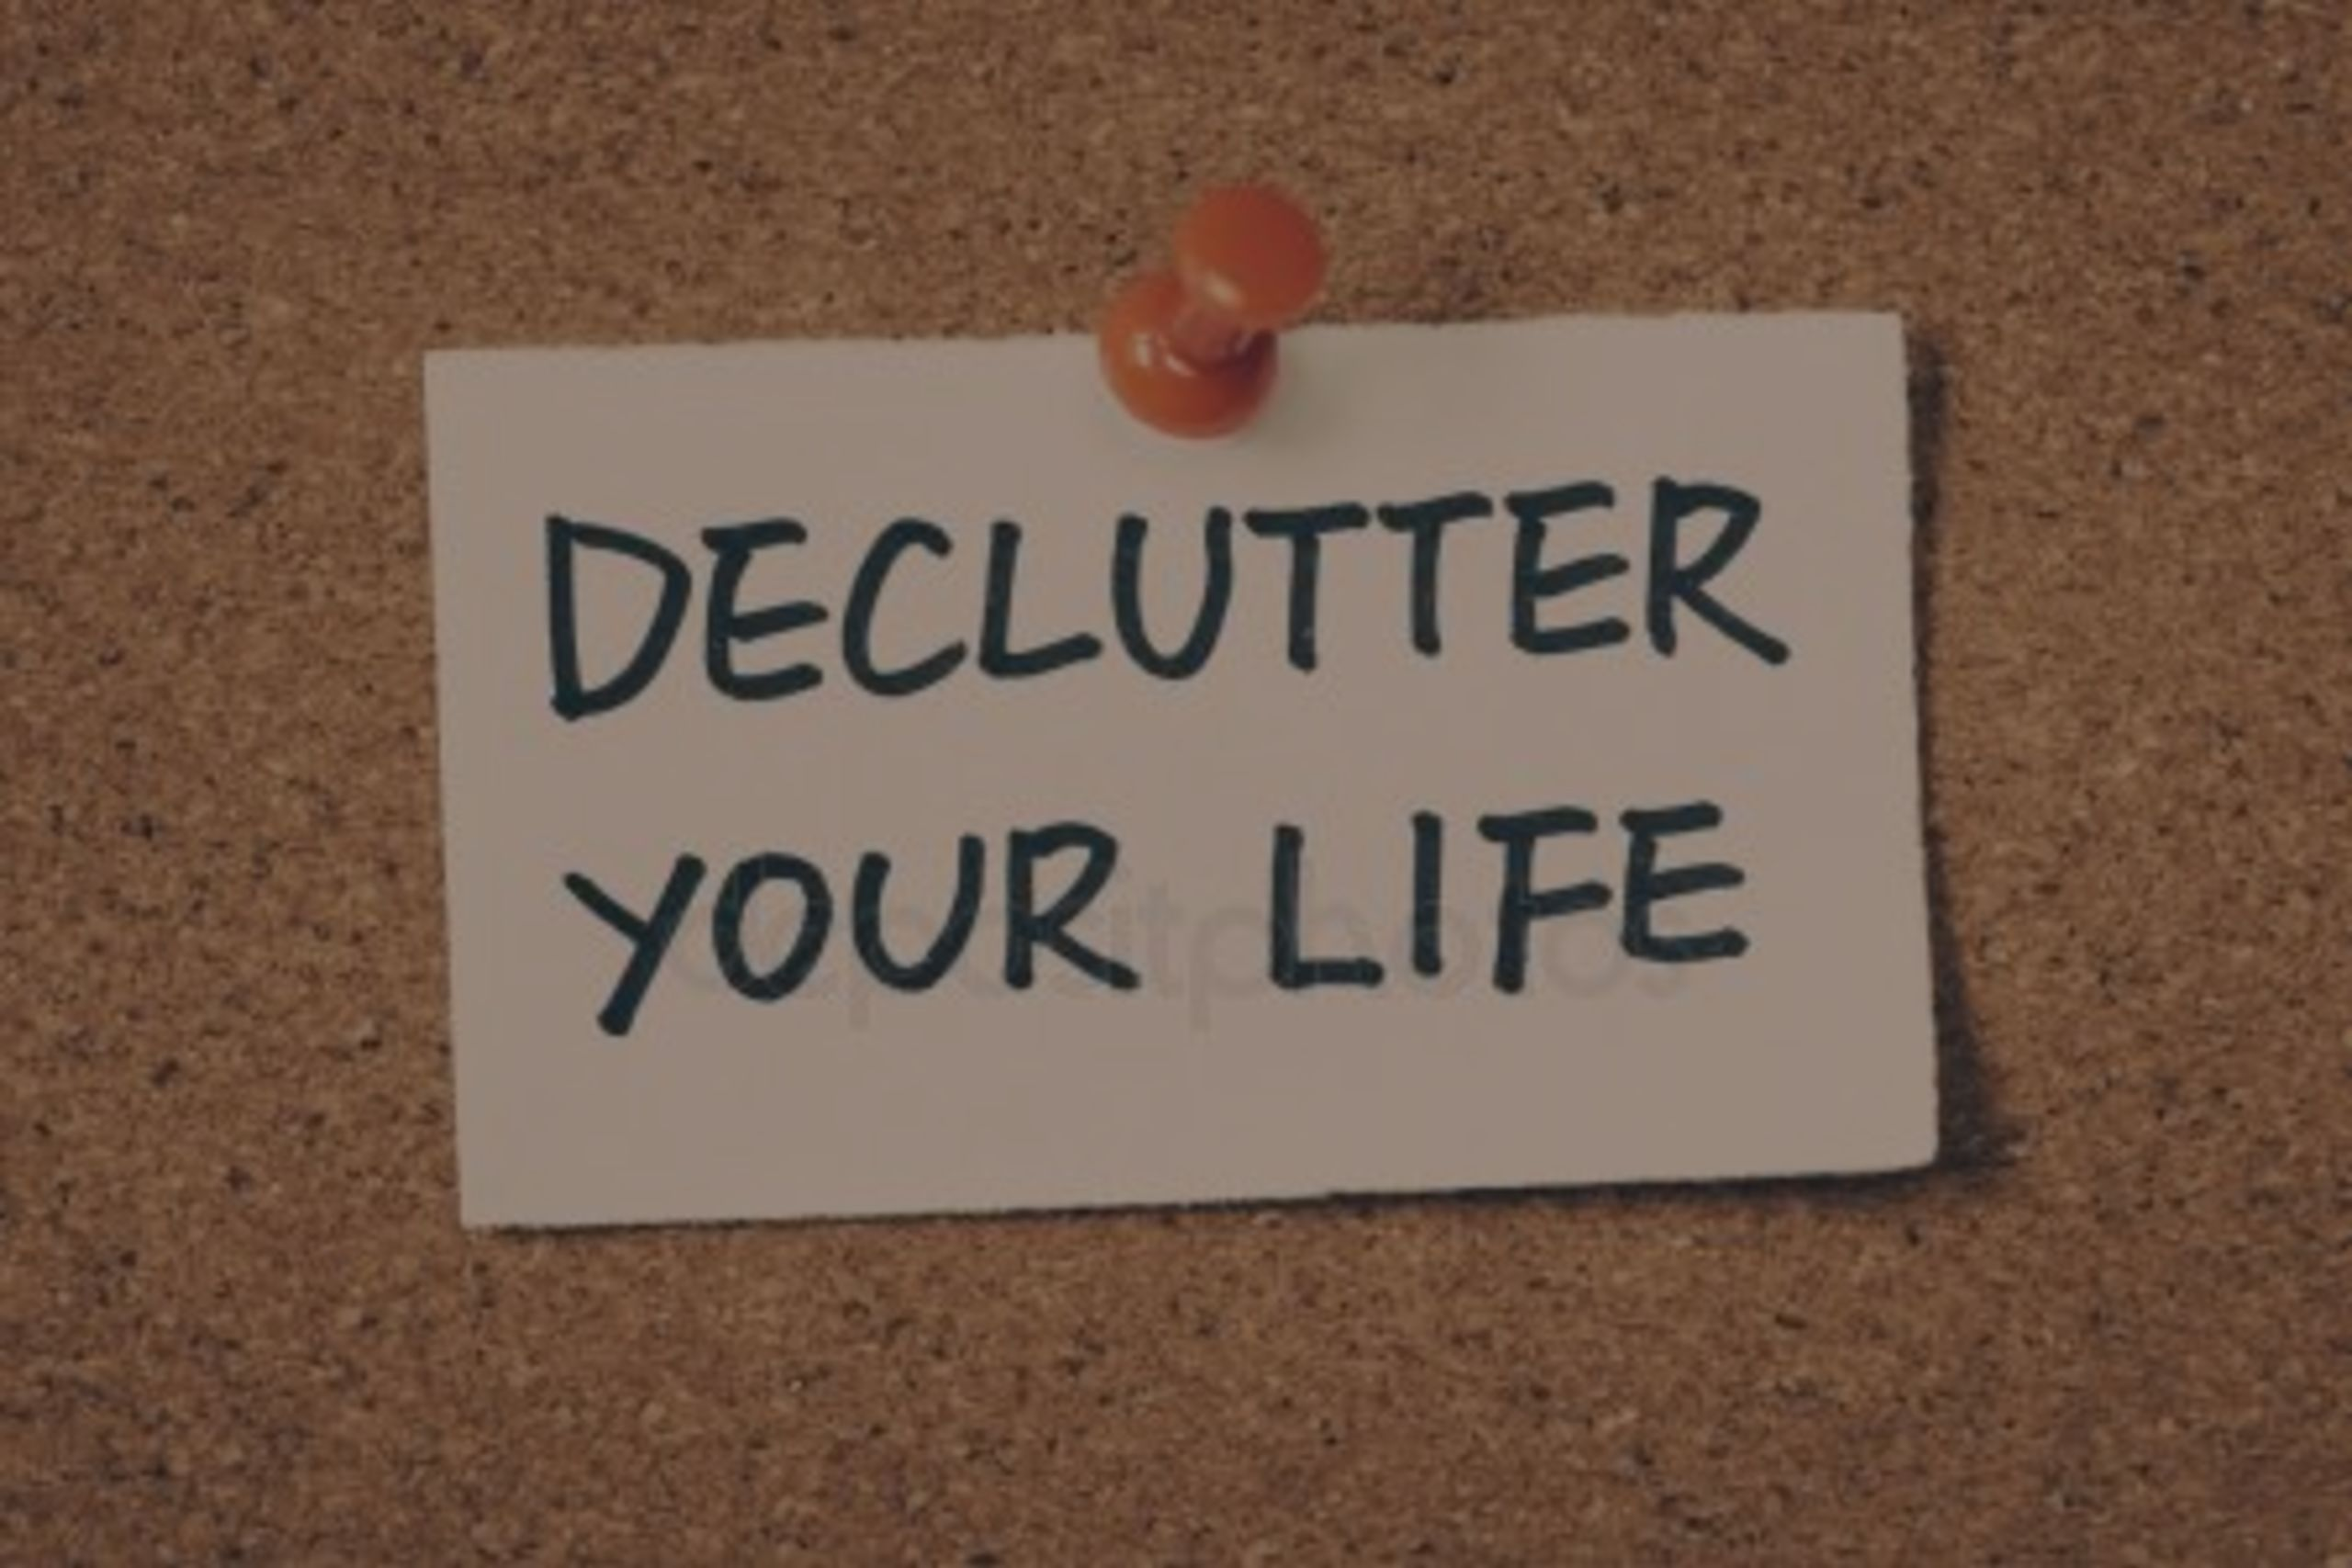 How to Declutter Your Home: 10 Creative Decluttering Tips